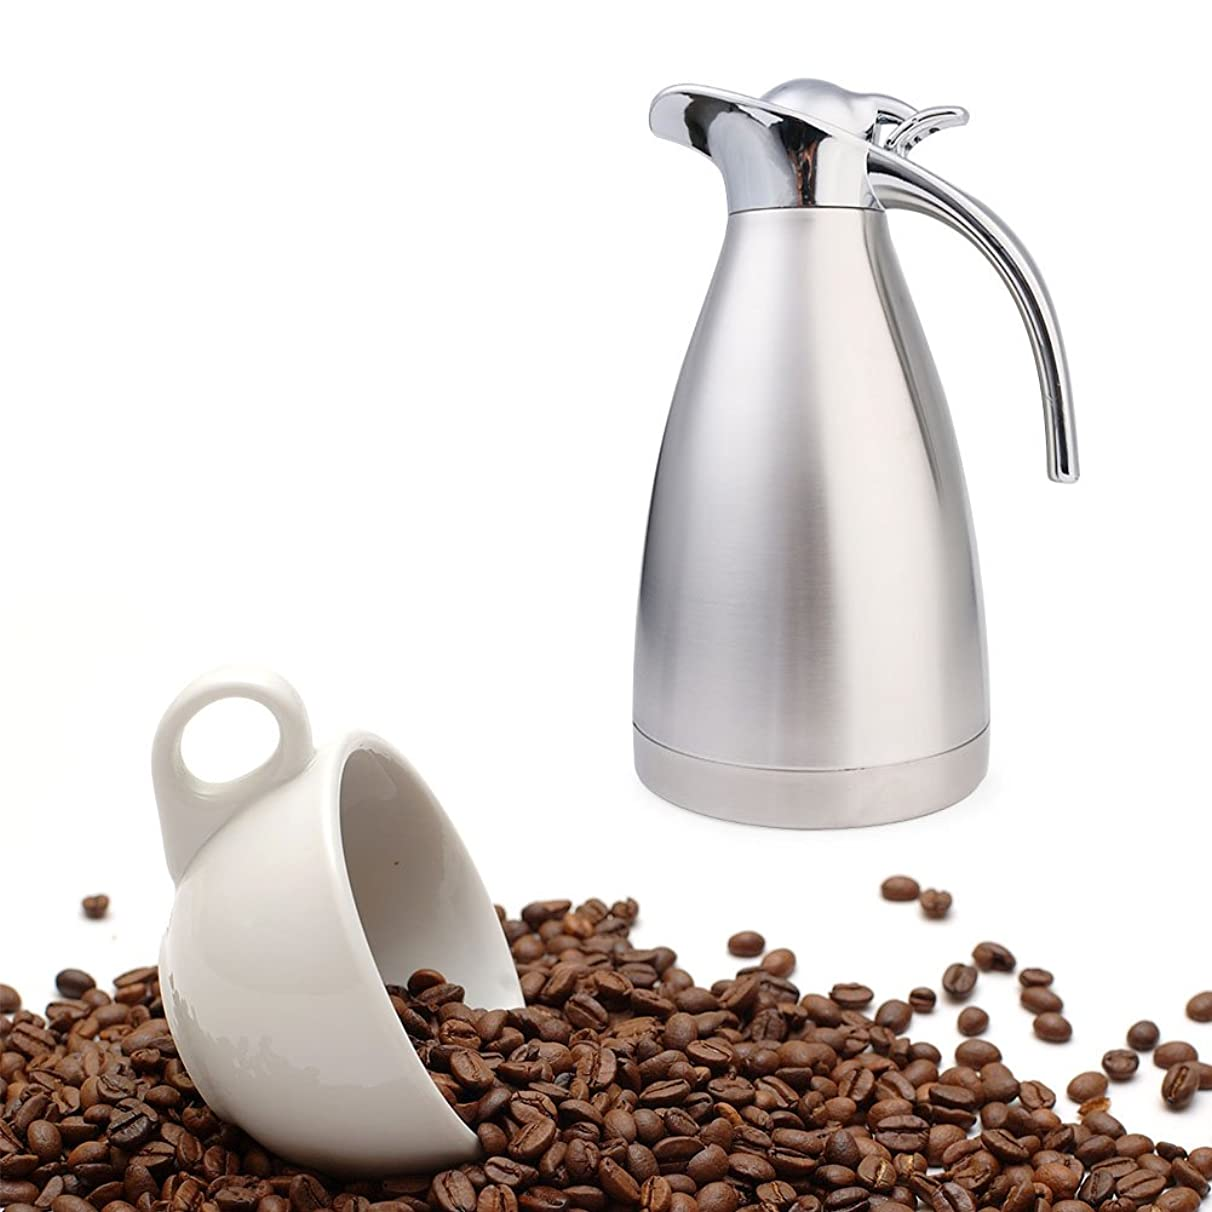 Coffee Thermal Carafe Stainless Steel Water Pitcher with Lid Stainless Steel Jug Coffee Plunger Cafetiere Insulated Pot by NYGY (1.5L, Silver)